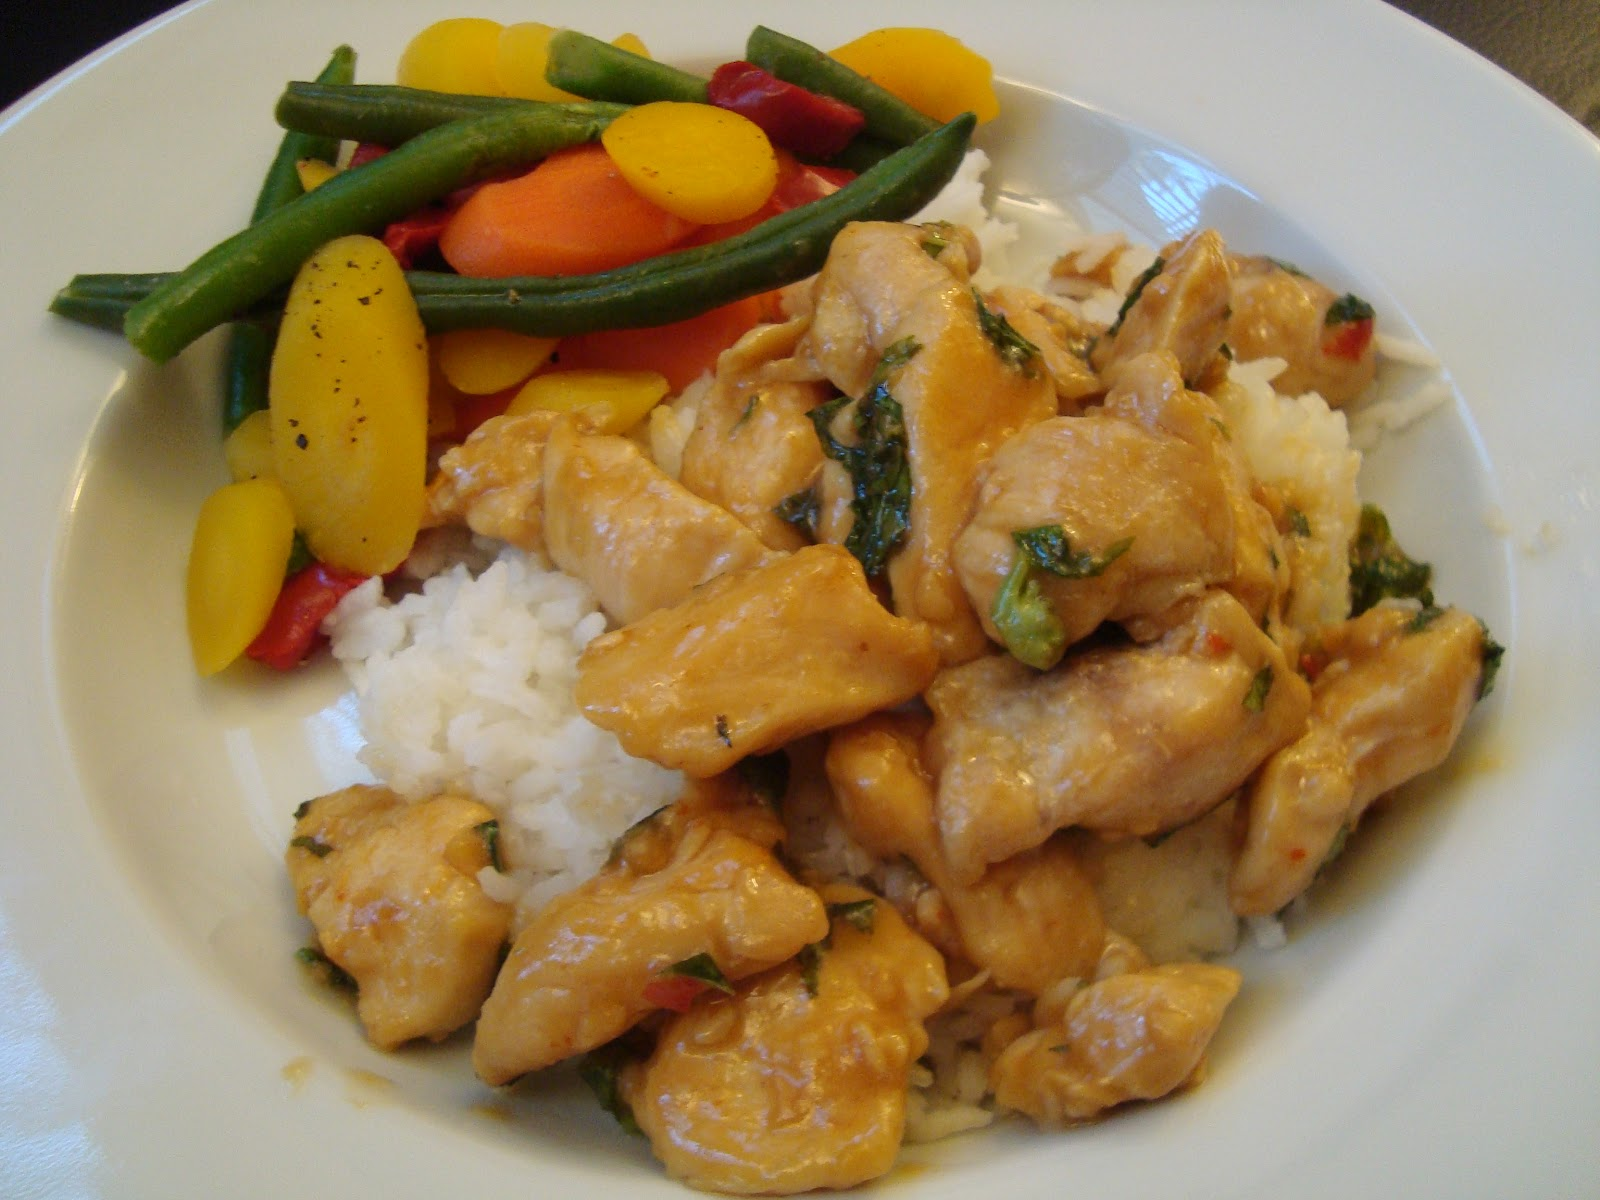 A Little Cooking: Spicy Basil Chicken